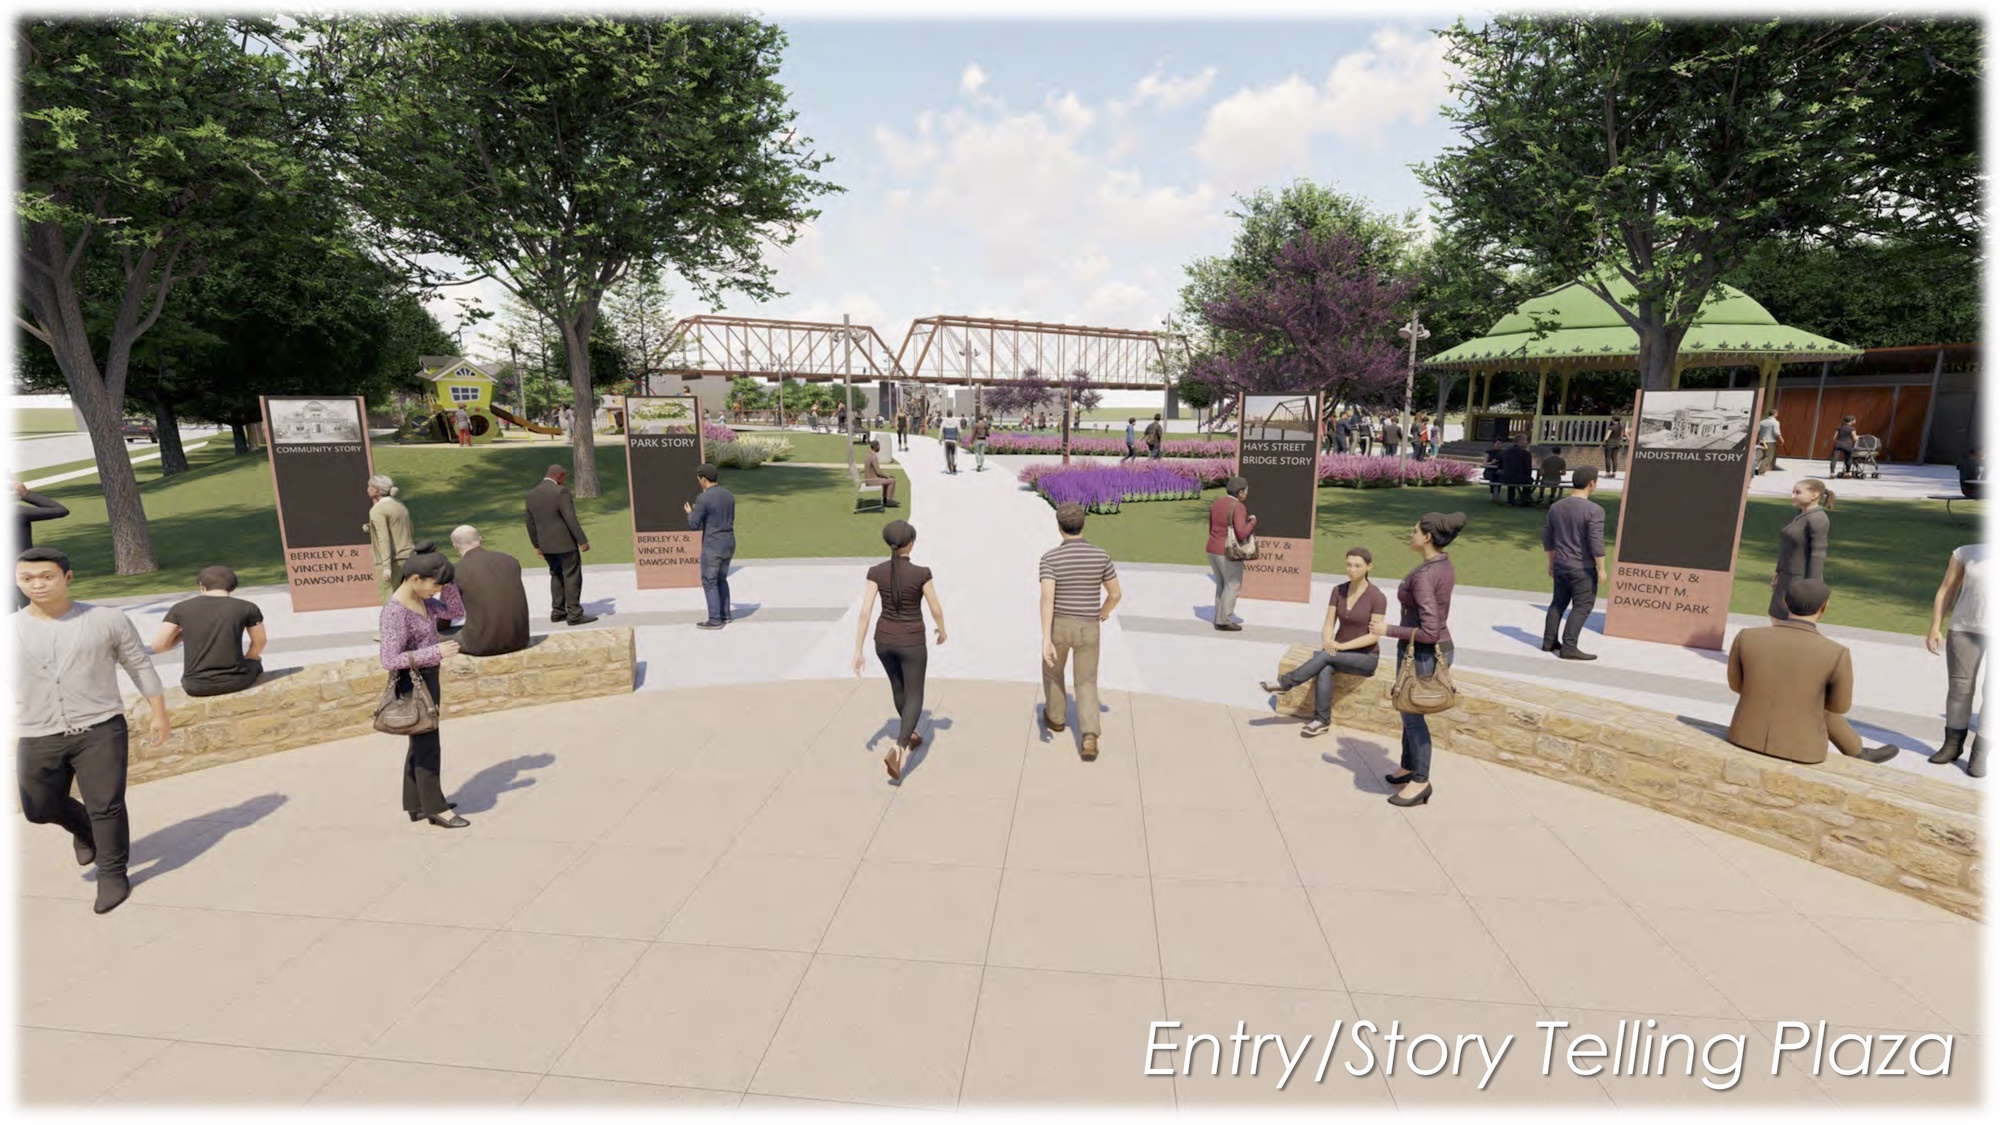 This rendering shows the conceptual design of an entry plaza and educational elements in the park planned for the empty lot next to the Hays Street Bridge.